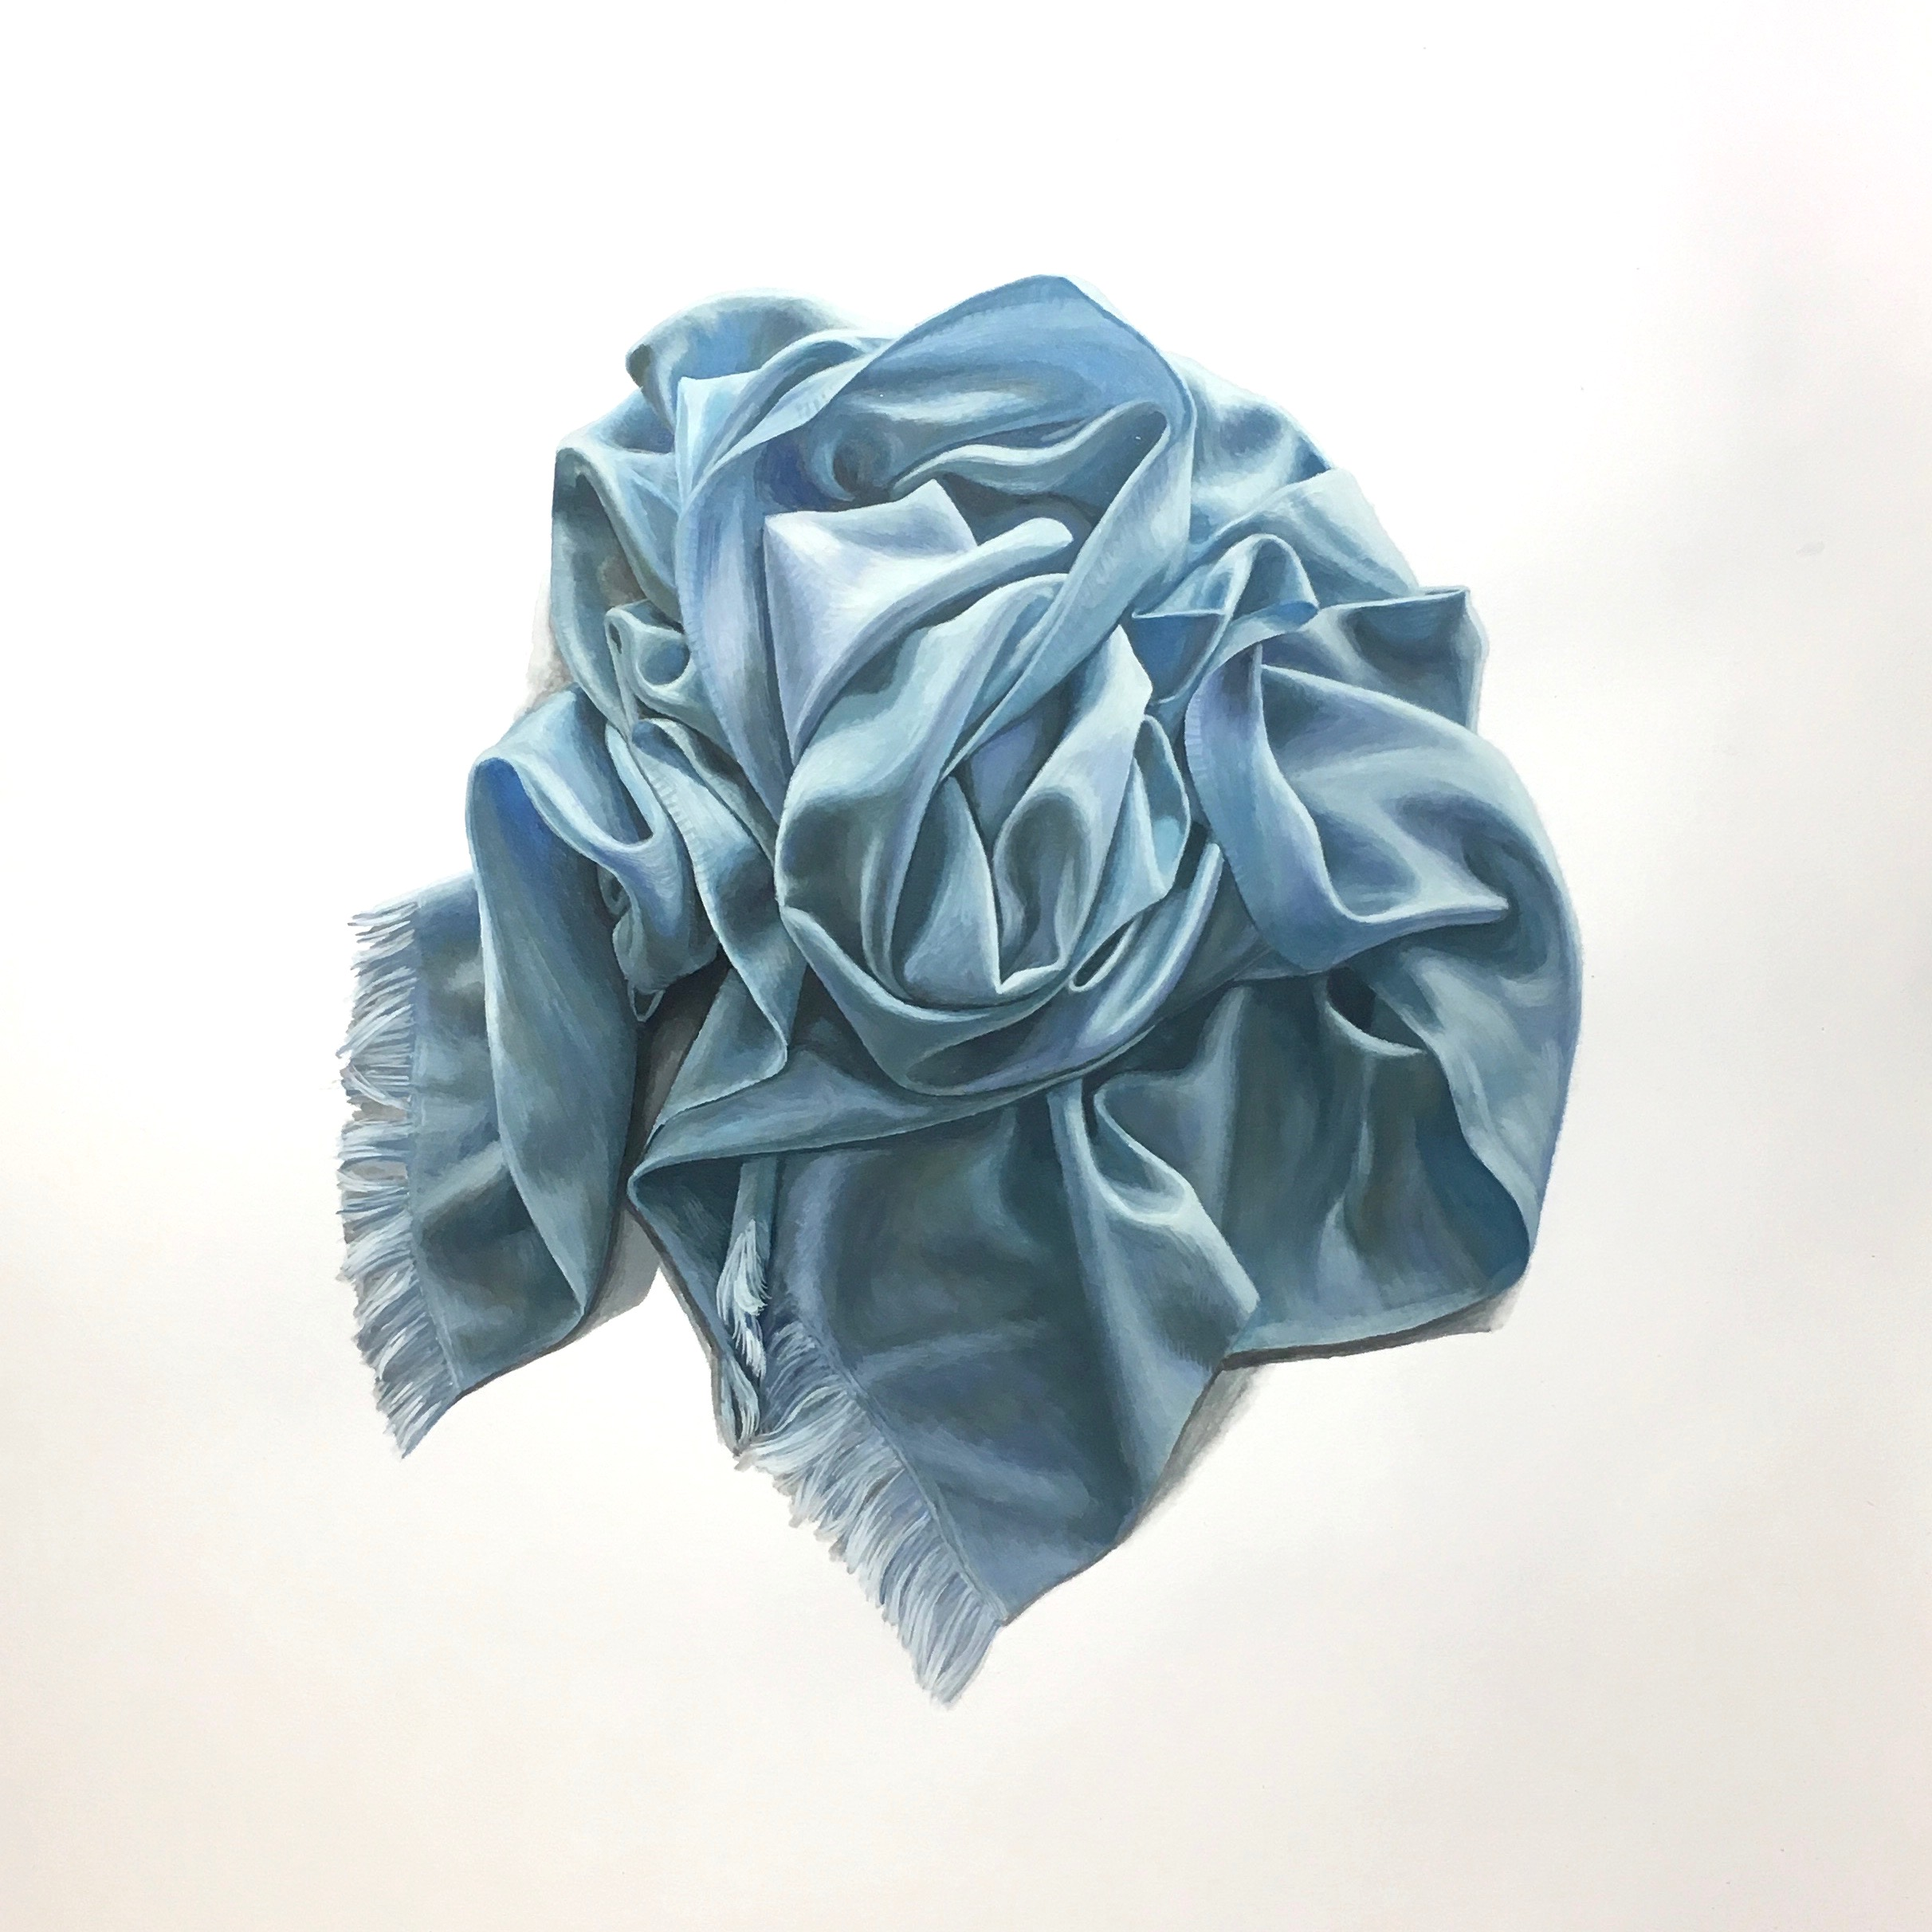 Rosette in Light Blue  Gouache on Paper  14 x 17 inches $850.